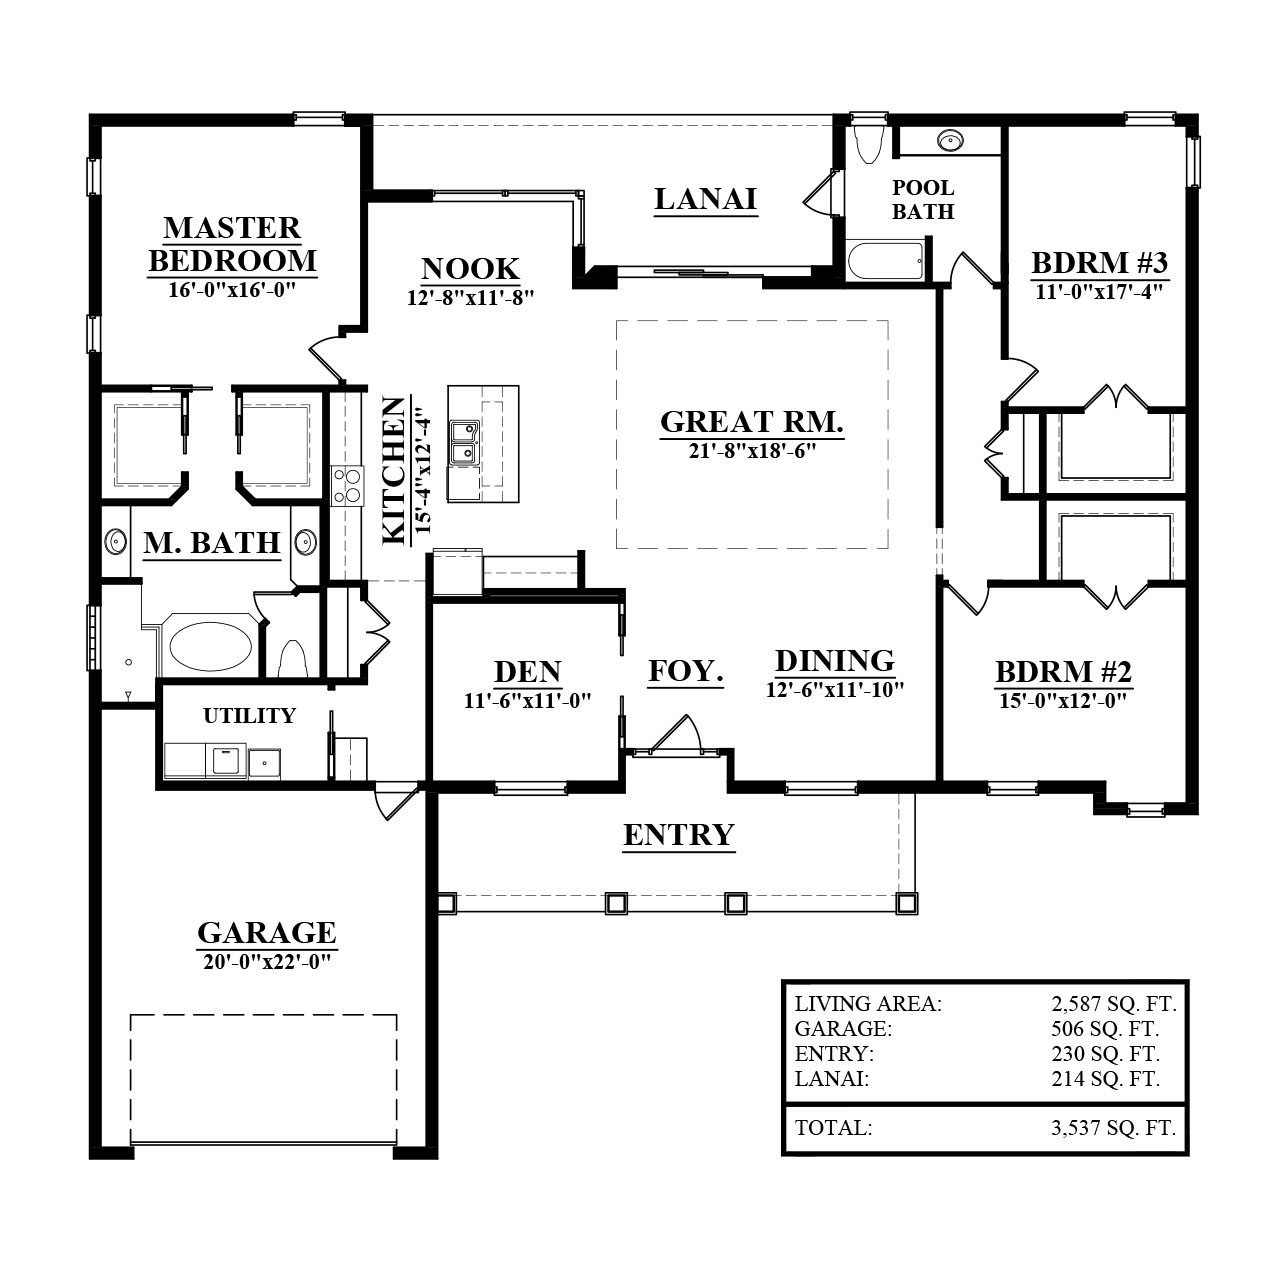 Ernie White Floor Plans_0002_THE STONECREST 2.jpg